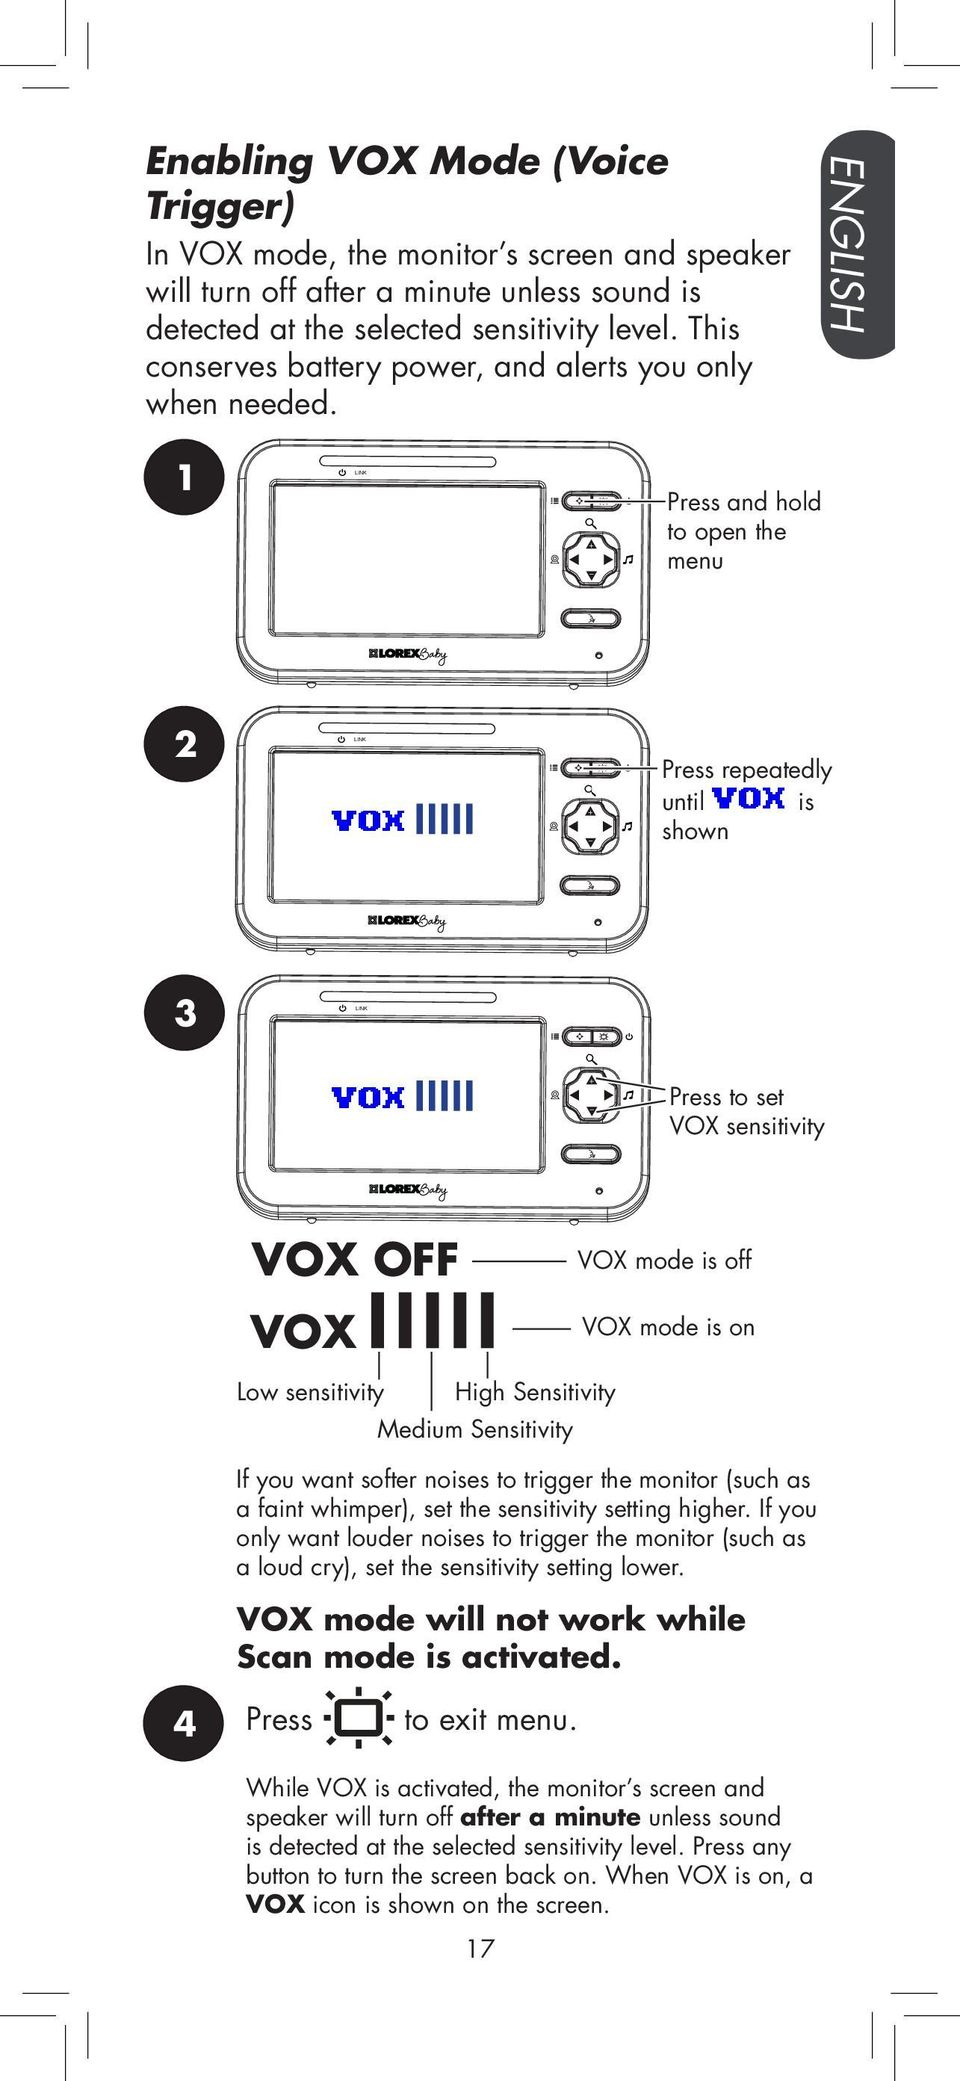 3 Press to set VOX sensitivity old edly VOX OFF VOX Low sensitivity High Sensitivity Medium Sensitivity VOX mode is off VOX mode is on If you want softer noises to trigger the monitor (such as a